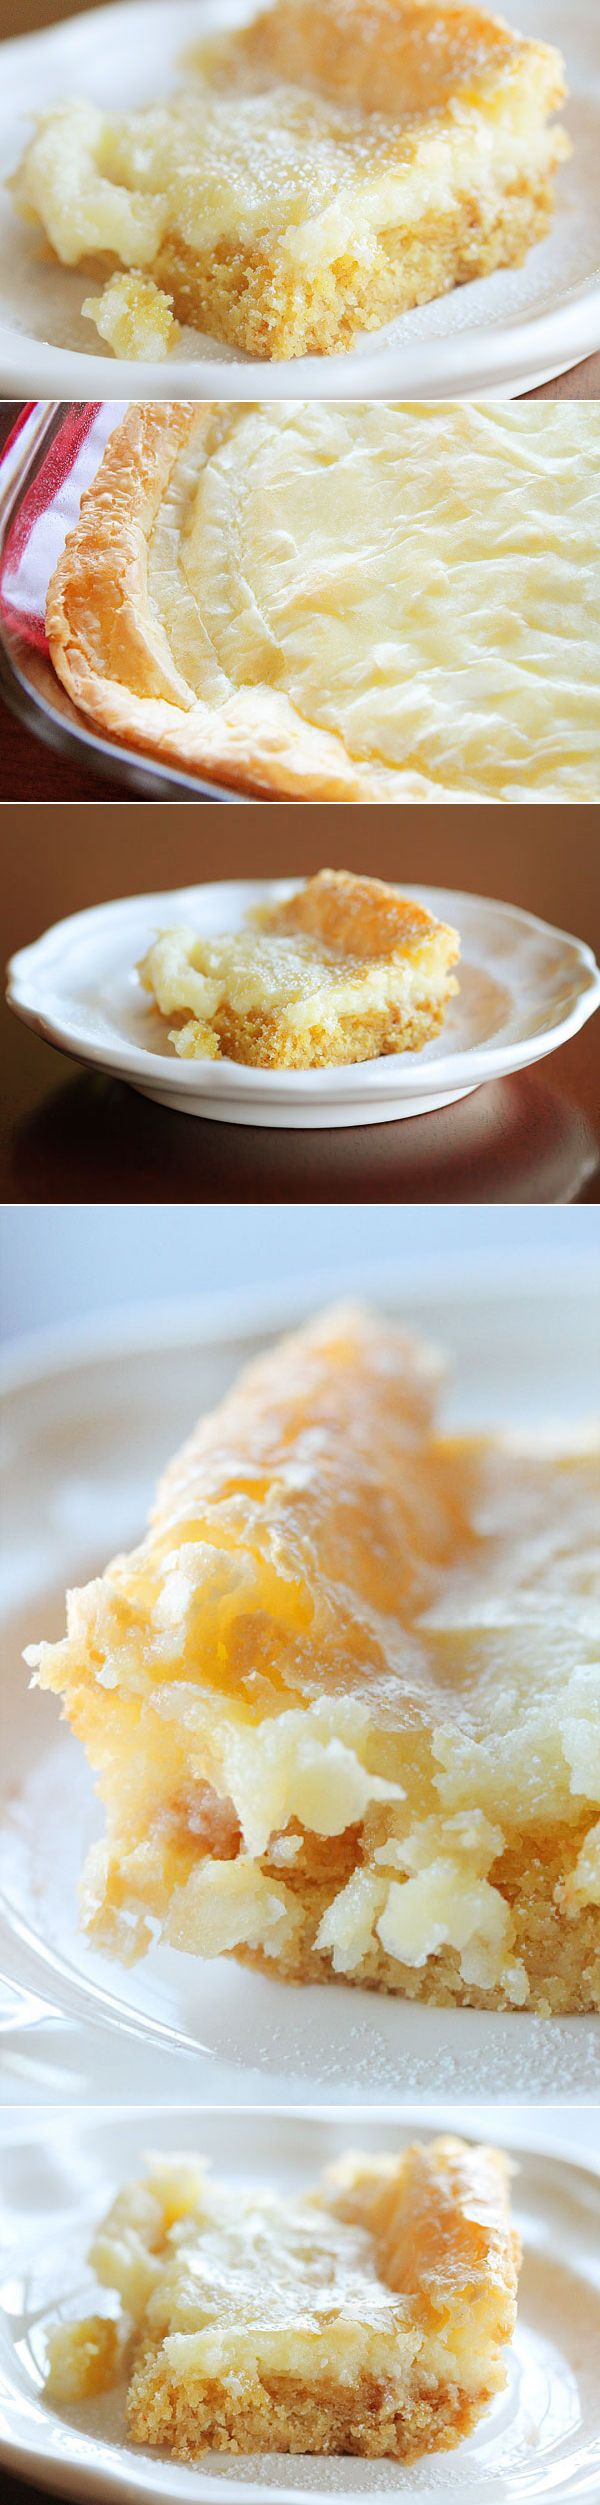 Texas gold only 5 ingredients (yellow cake mix, eggs, cream cheese, butter, powdered sugar) is super easy to make. I add unsweetened coconut and some walnuts., delicious.